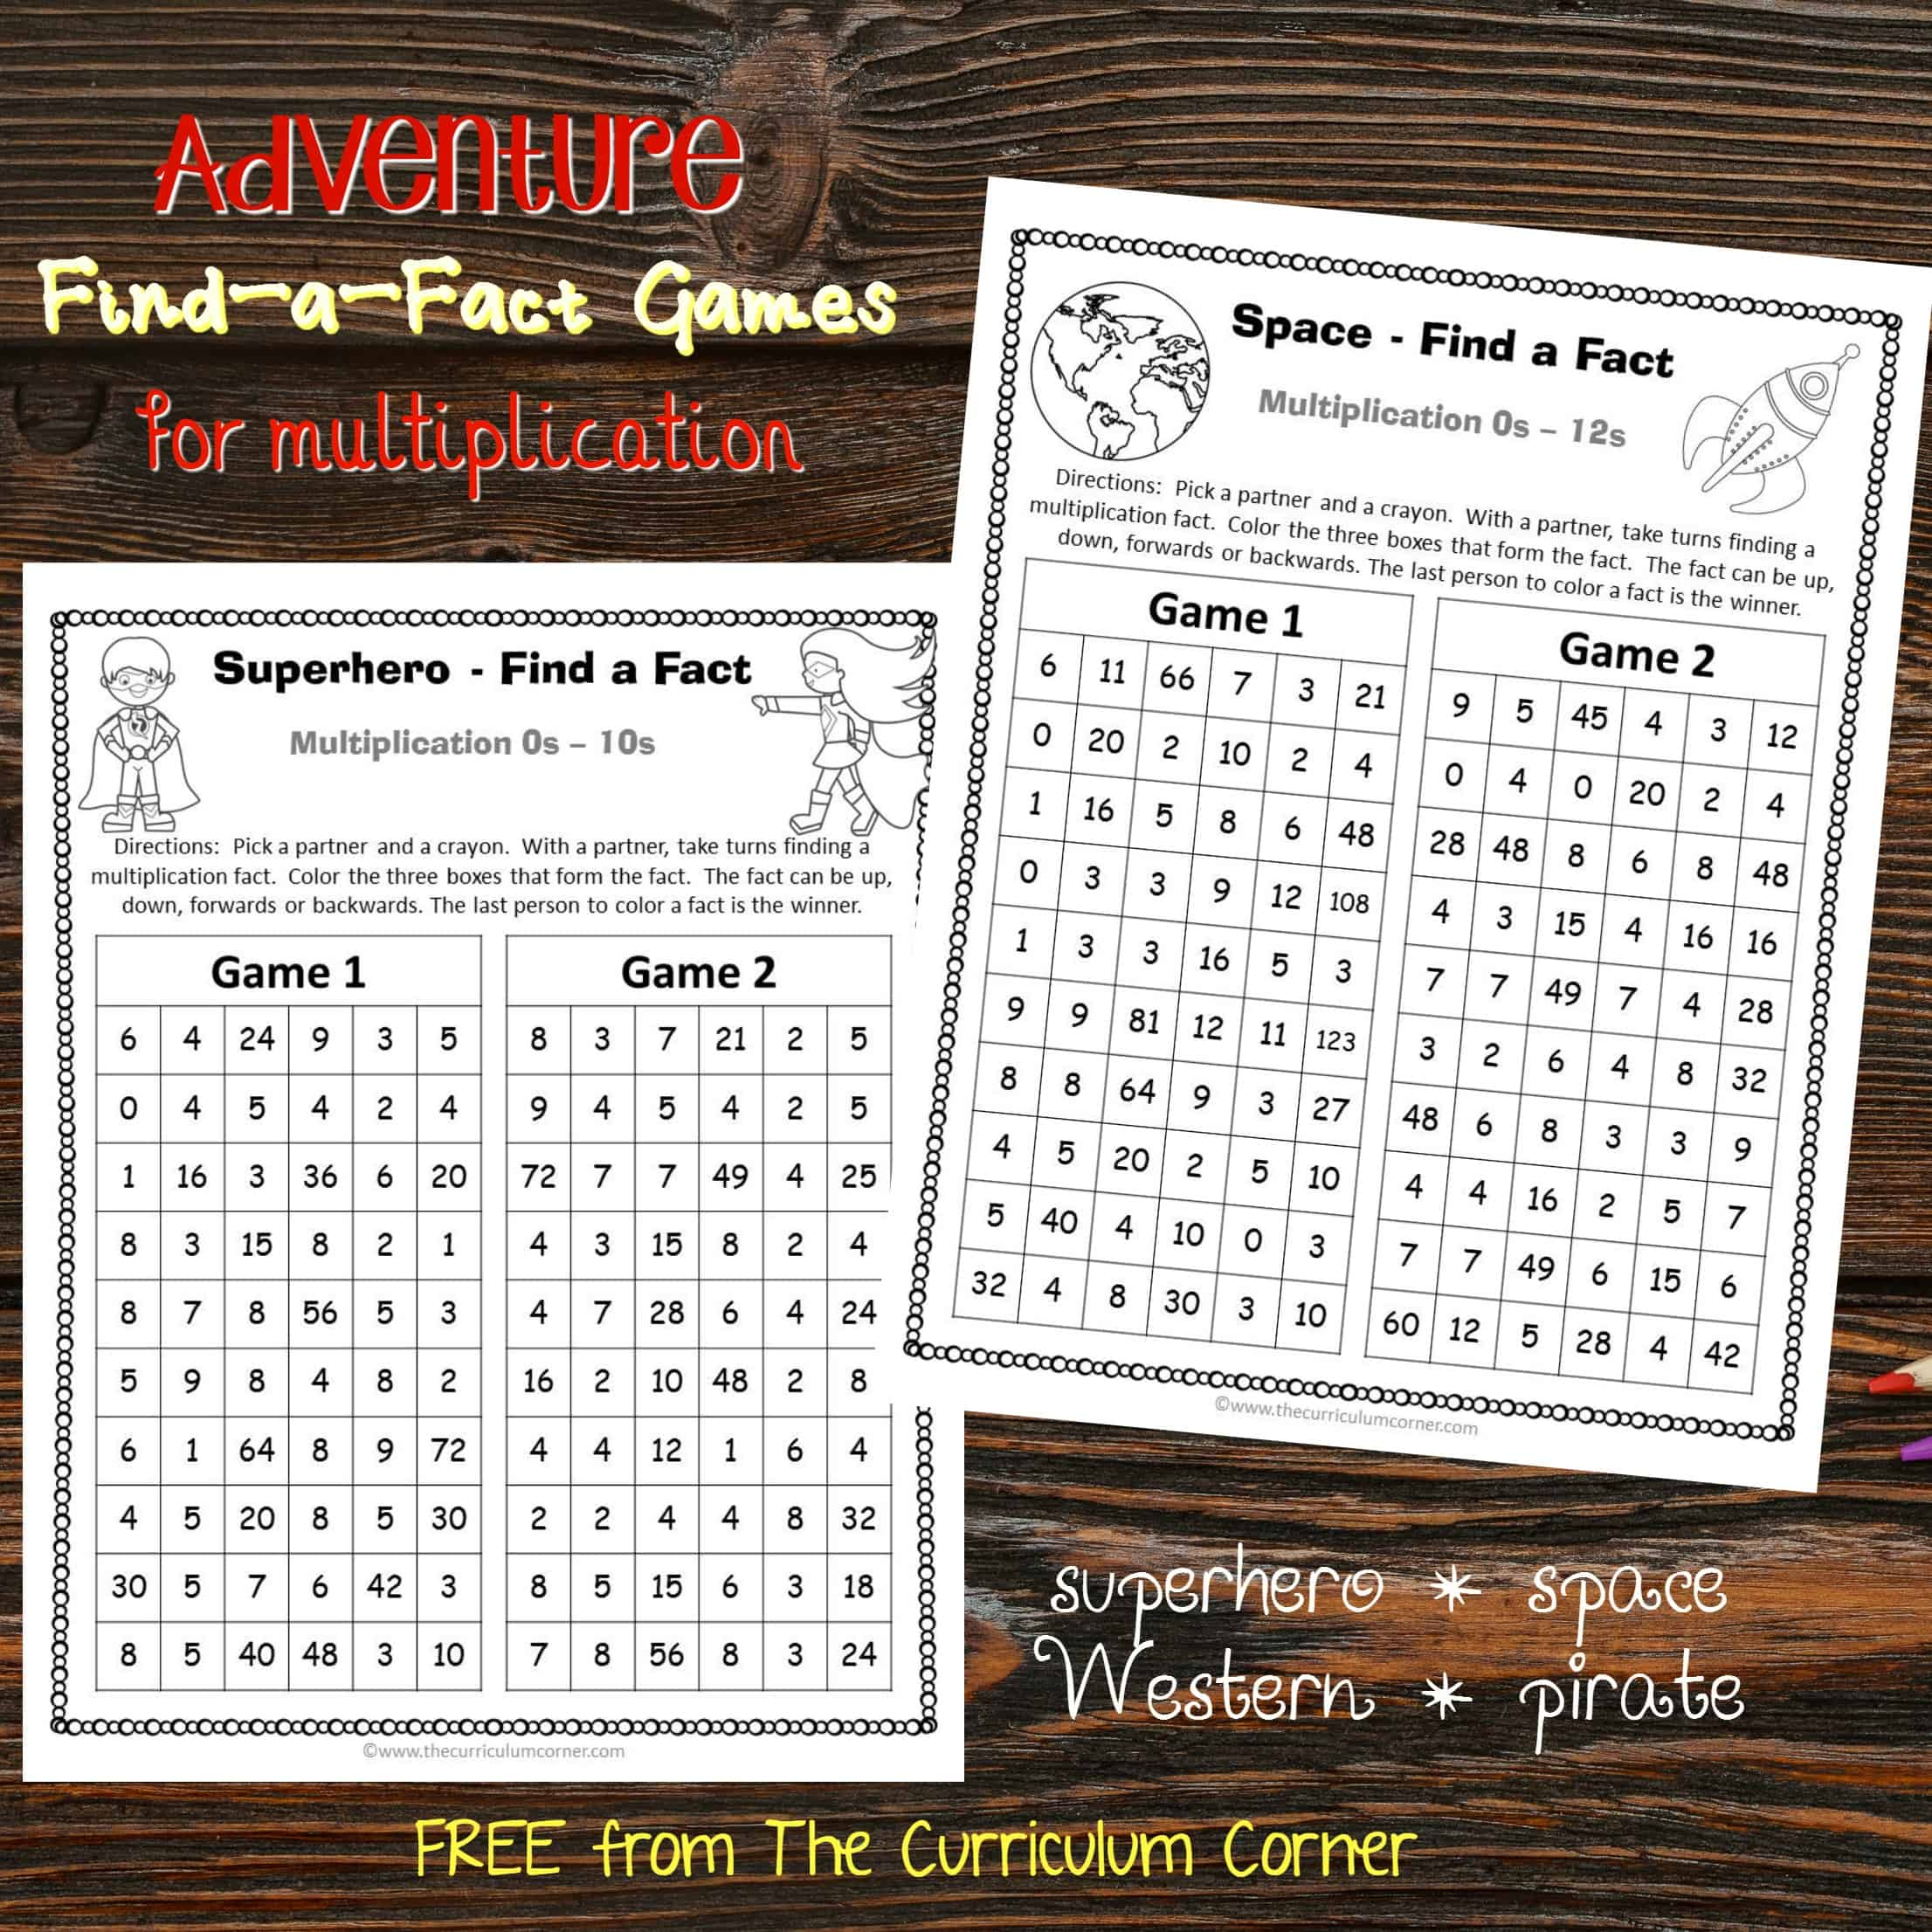 Adventure Find a Fact Multiplication Games